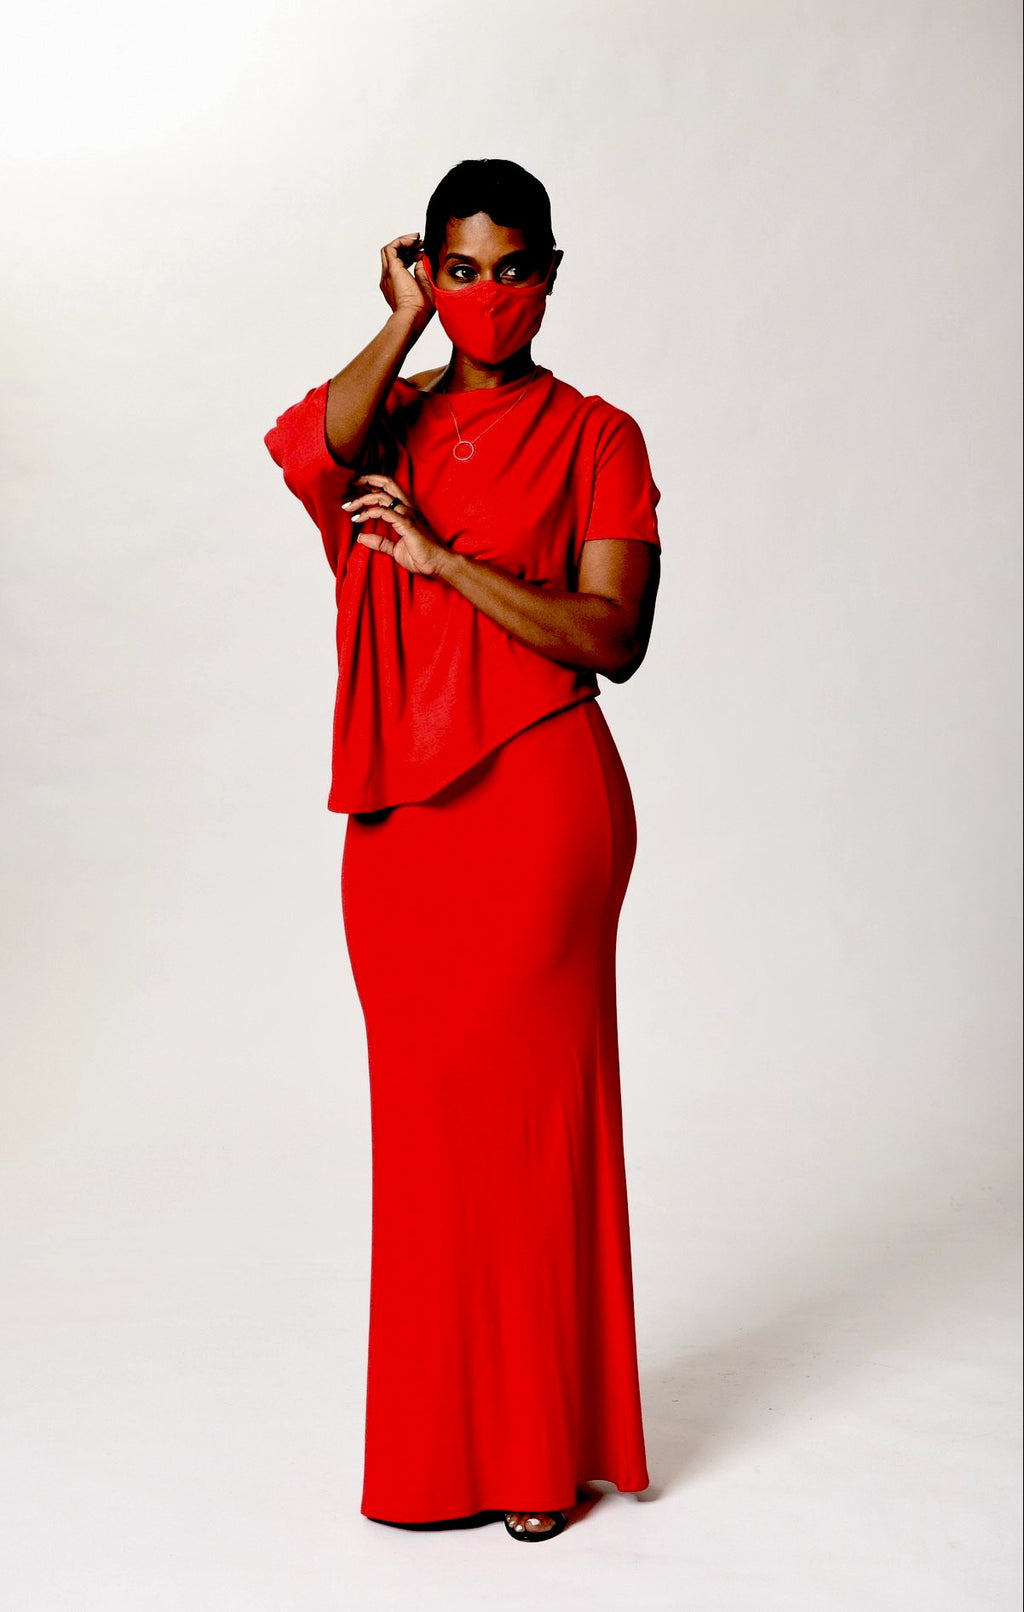 Red Cloth Mask - TN-123